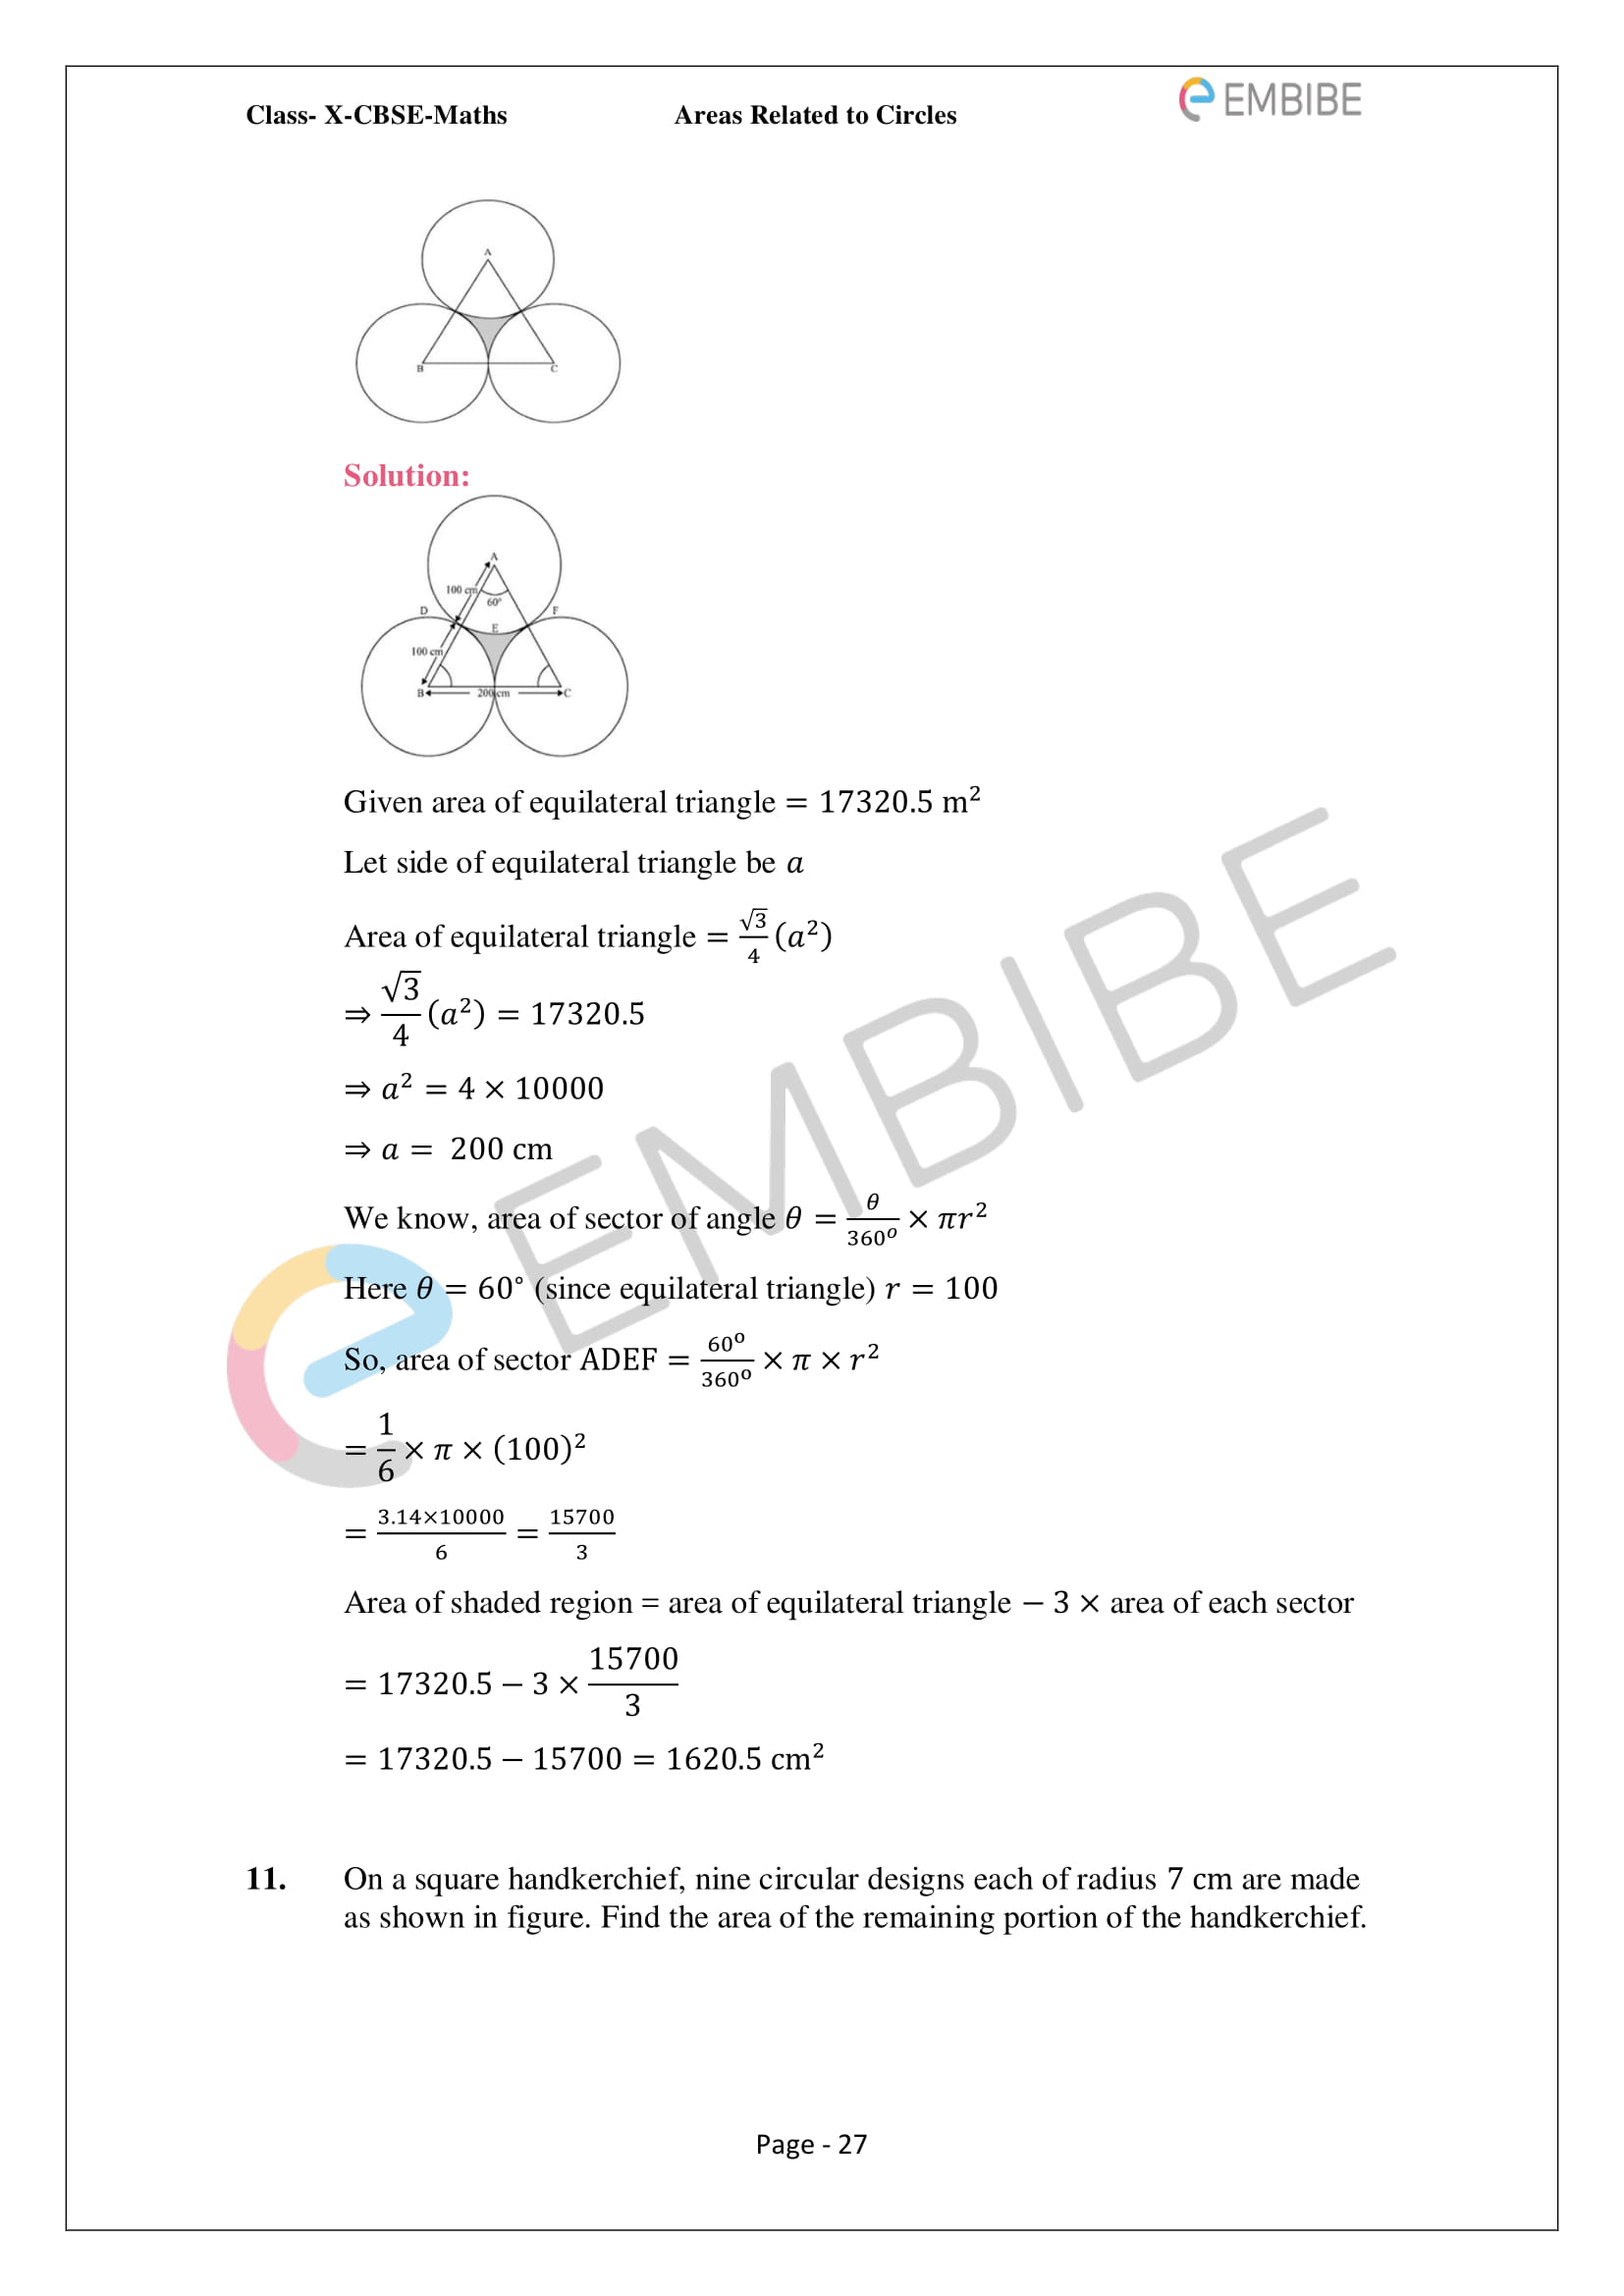 CBSE NCERT Solutions For Class 10 Maths Chapter 12 - Areas Related To Circle - 27